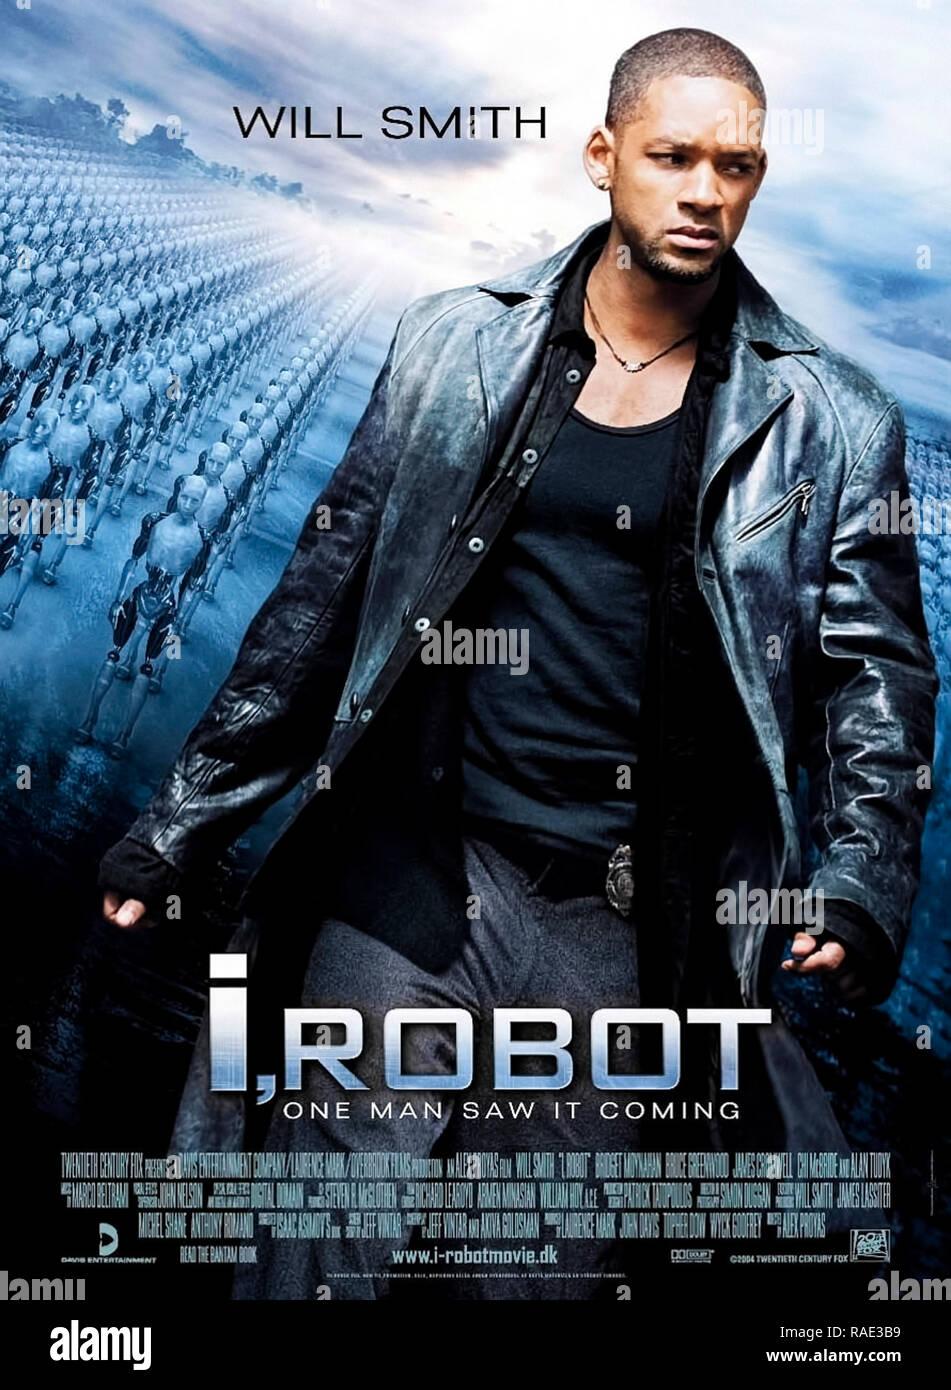 2004 US poster for 'I, Robot' featuring Will Smith as a technophobic detective sharing some details from the eponymous collection of short stories by Isaac Asimov. - Stock Image